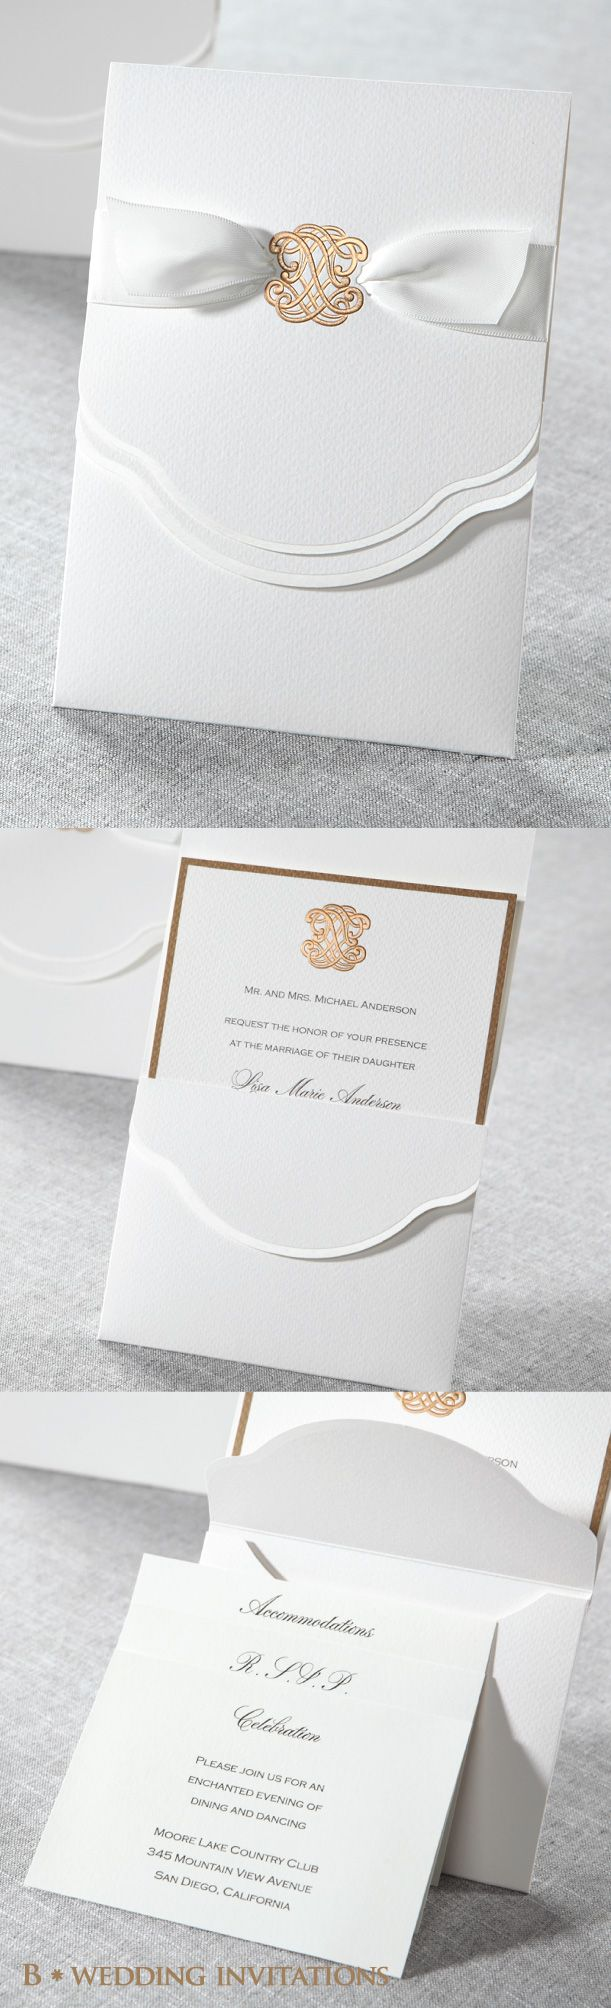 Urban Couture with a Bow by B Wedding Invitations #wedding #invitations #weddinginvitations #bweddinginvitations #pocketinvitation #ribboninvitation #goldinvitation #lasercut #lasercutinvitation #2015wedding